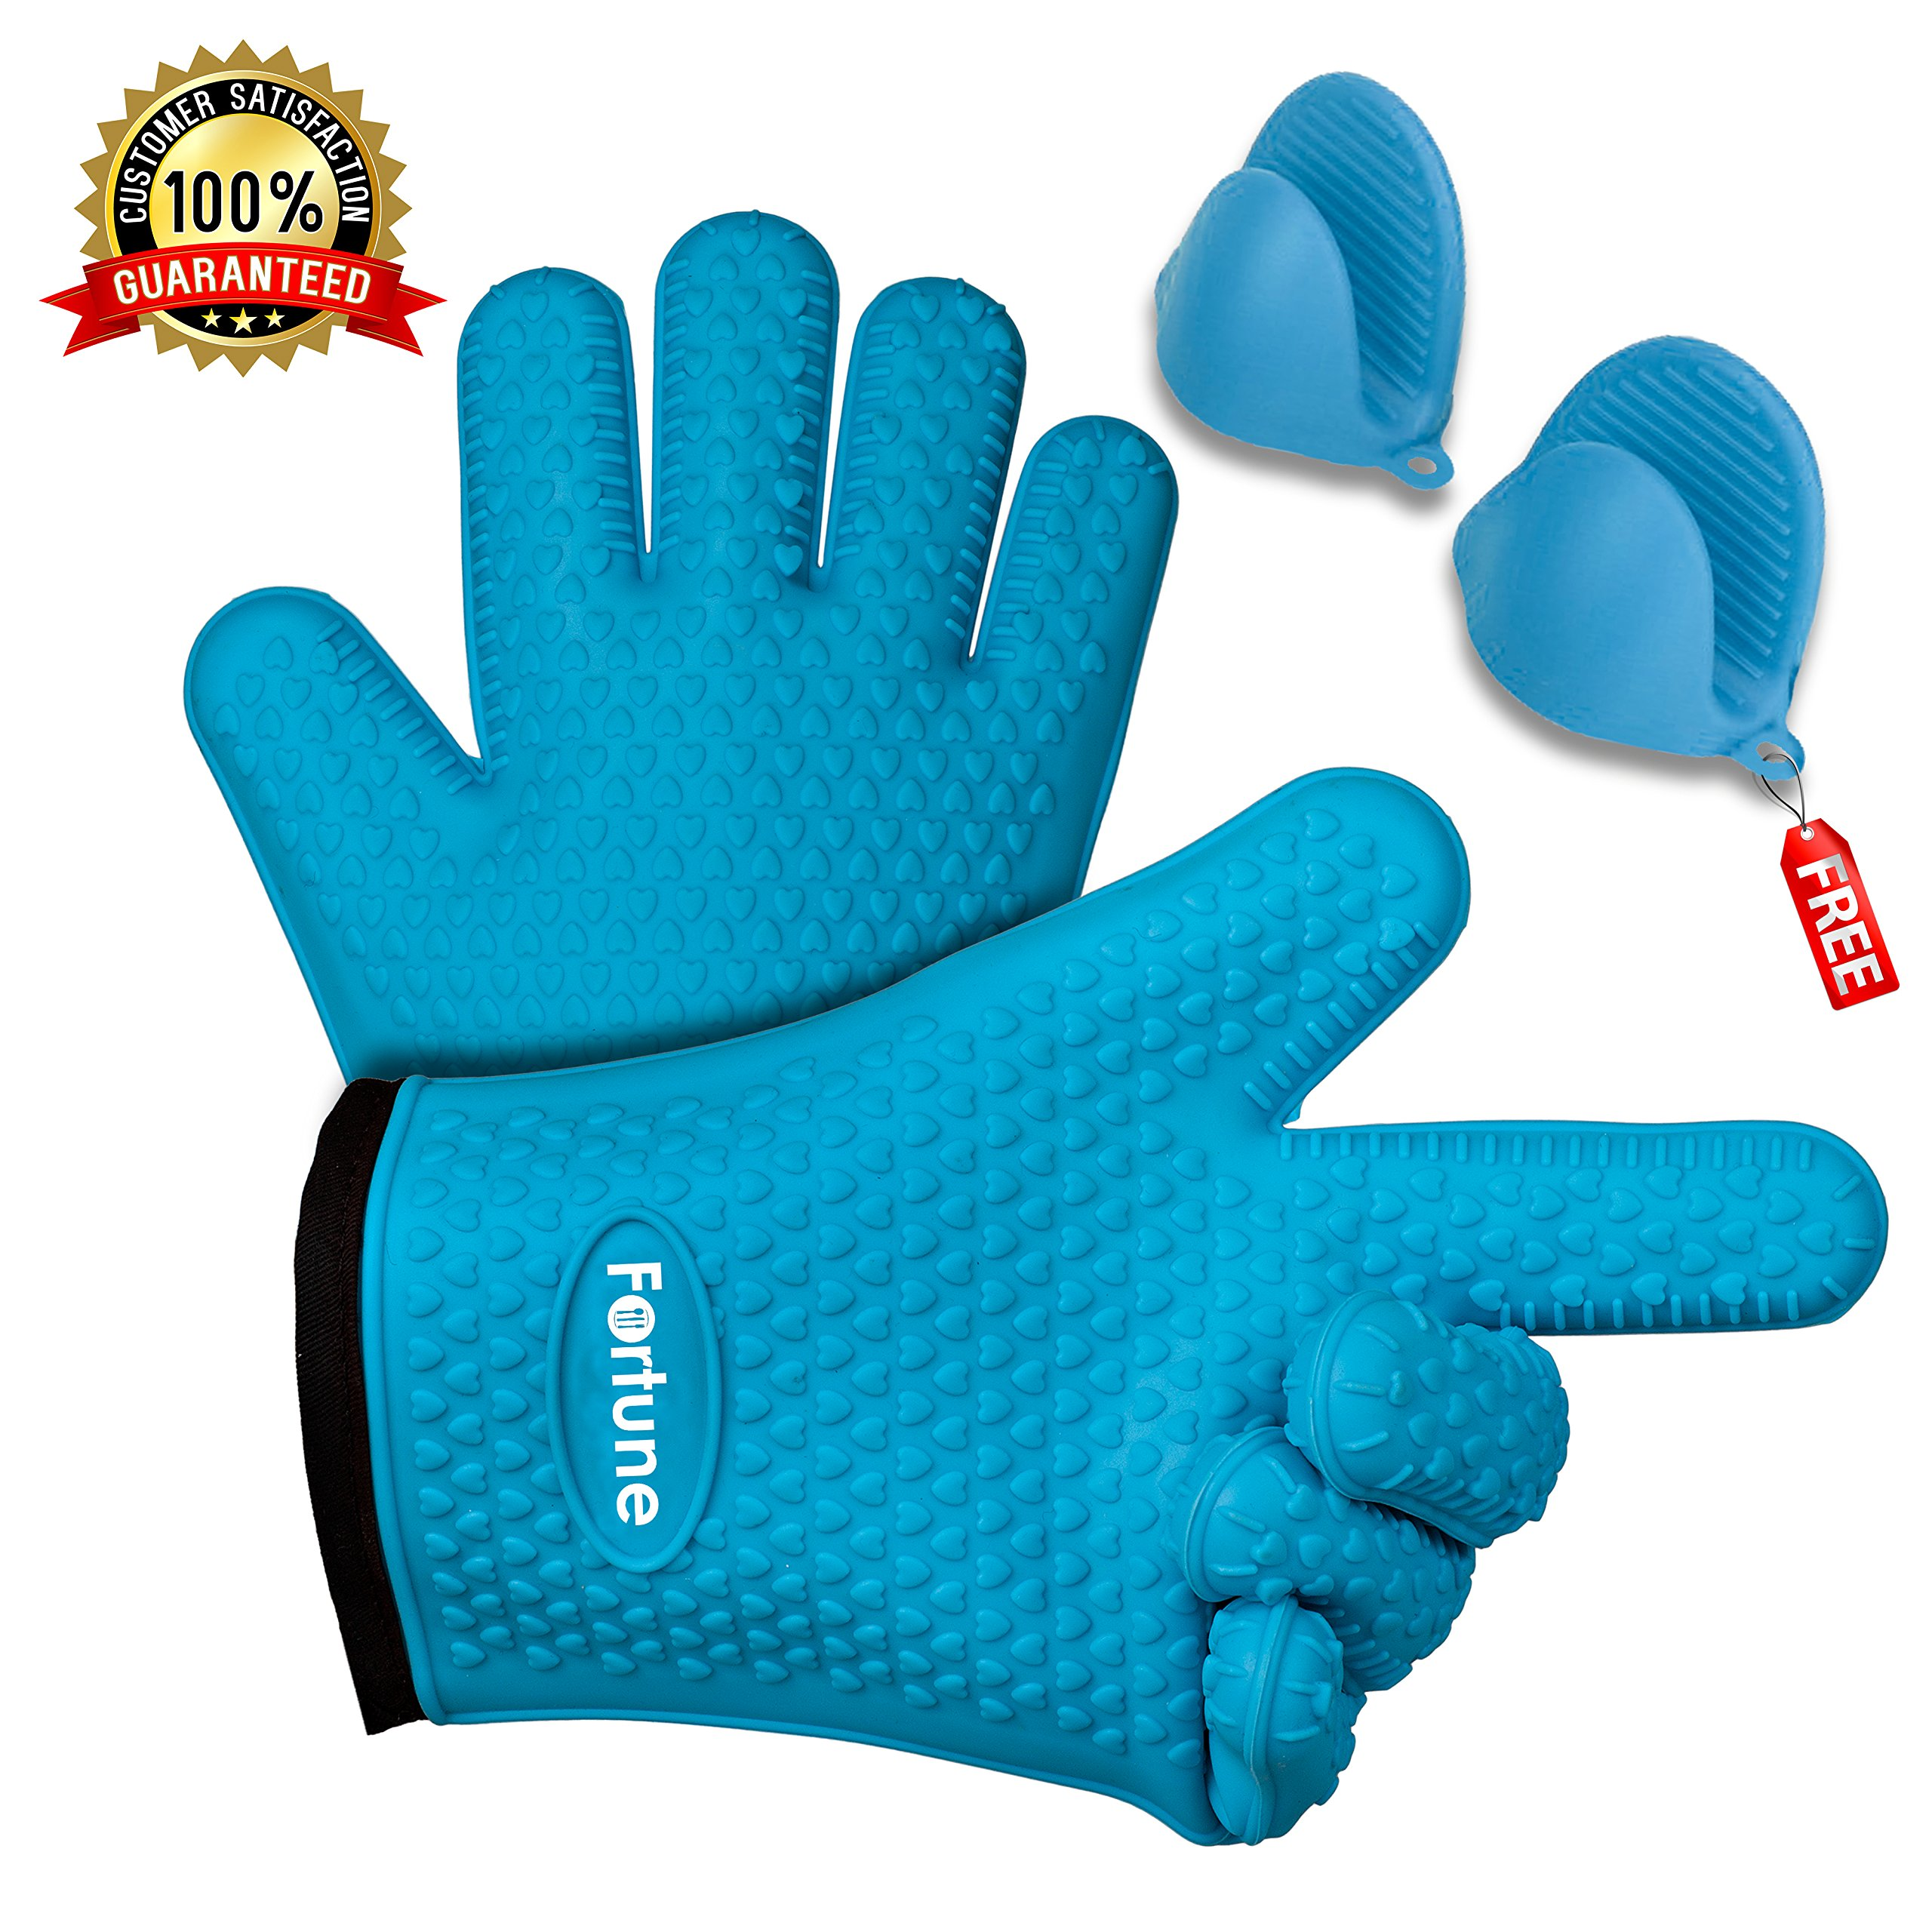 Silicone Grilling Gloves - Best Heat Resistant Oven Mitts For Cooking, Baking, BBQ & Boiling Non-Slip Potholders with Internal Cotton Layer - Includes Mini Oven Mitt (Blue) by Fortune by TM